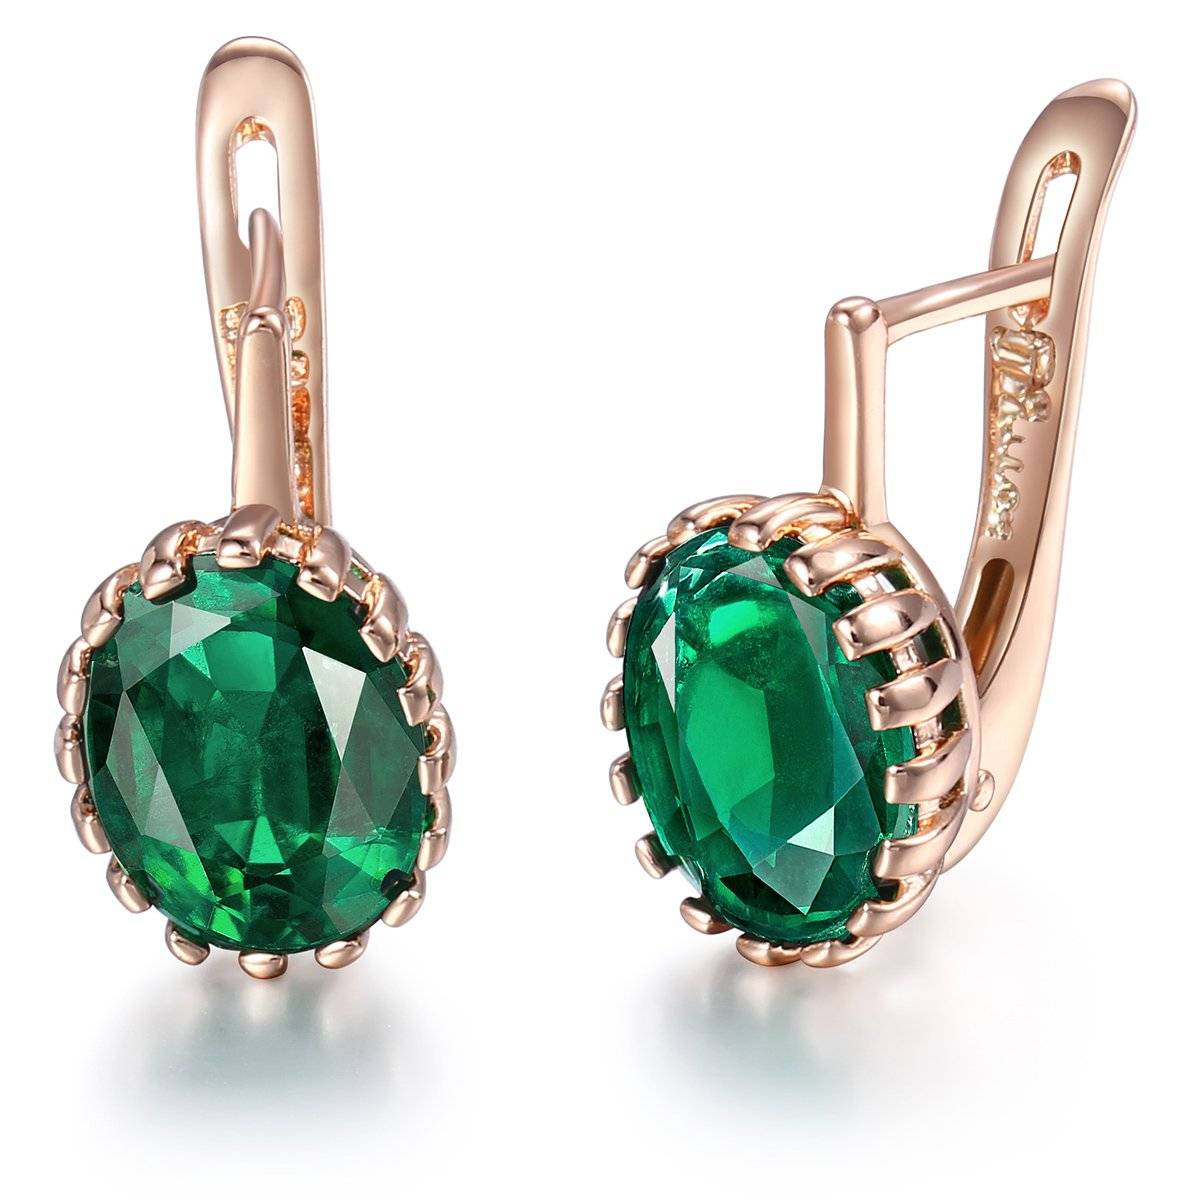 37daeddc4 Davieslee 585 Rose Gold Plated Oval Green Stone Stud Earrings For Women  Elegant Fashion Jewellery: Amazon.co.uk: Jewellery